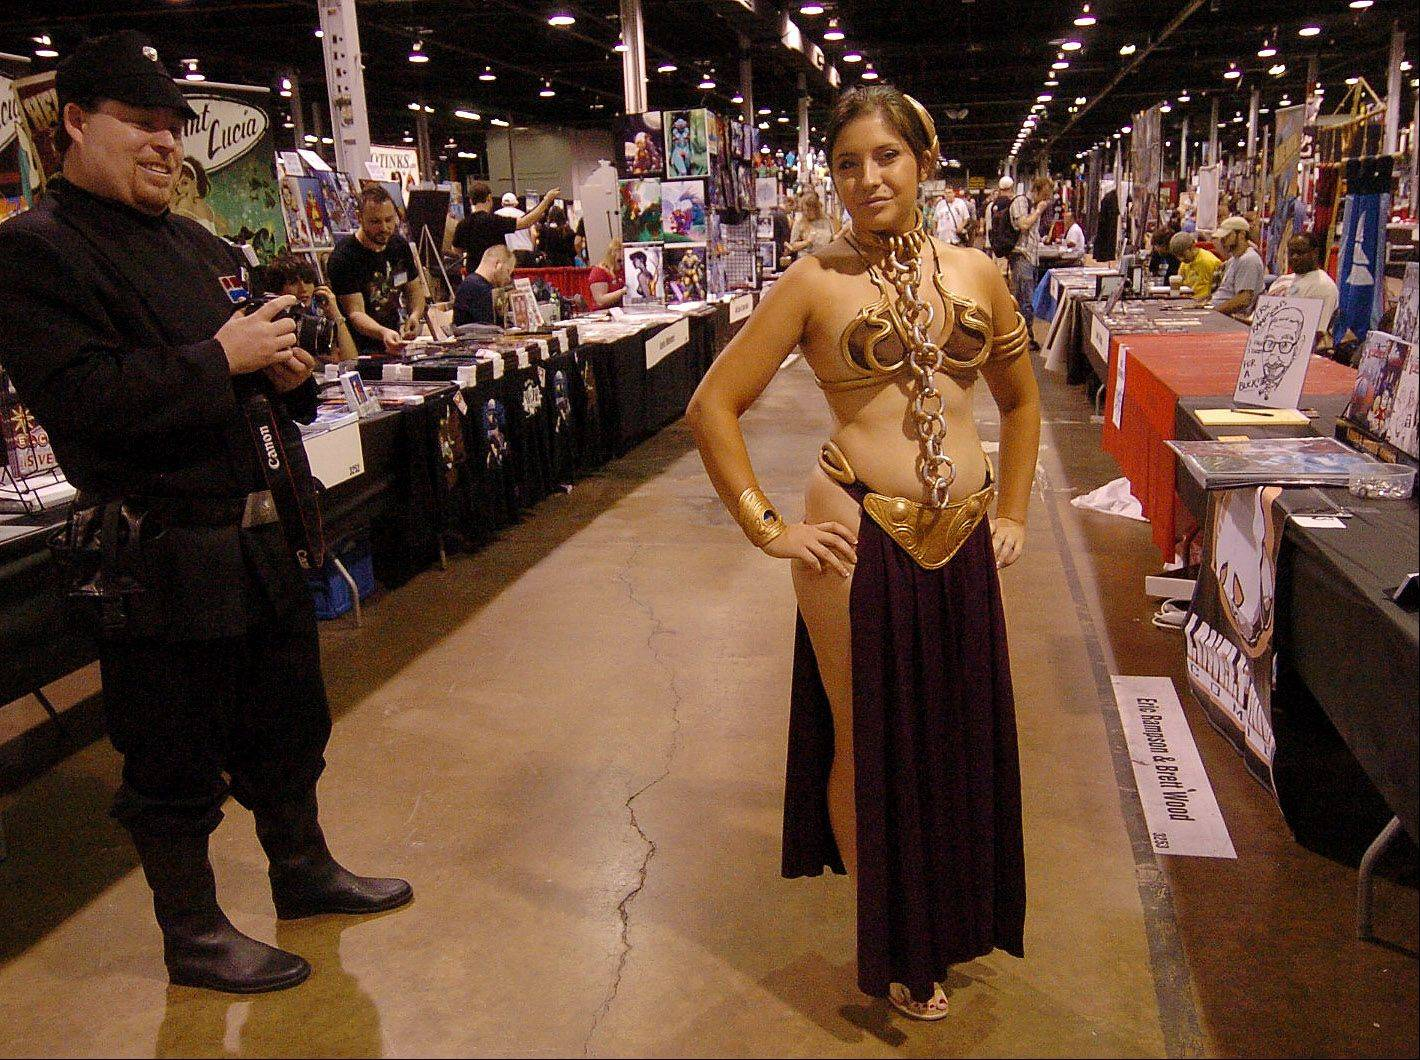 Eve Johnson of Grand Rapids, Michigan, portraying Princess Leia from Star Wars at the Wizard World Chicago Comic Con.